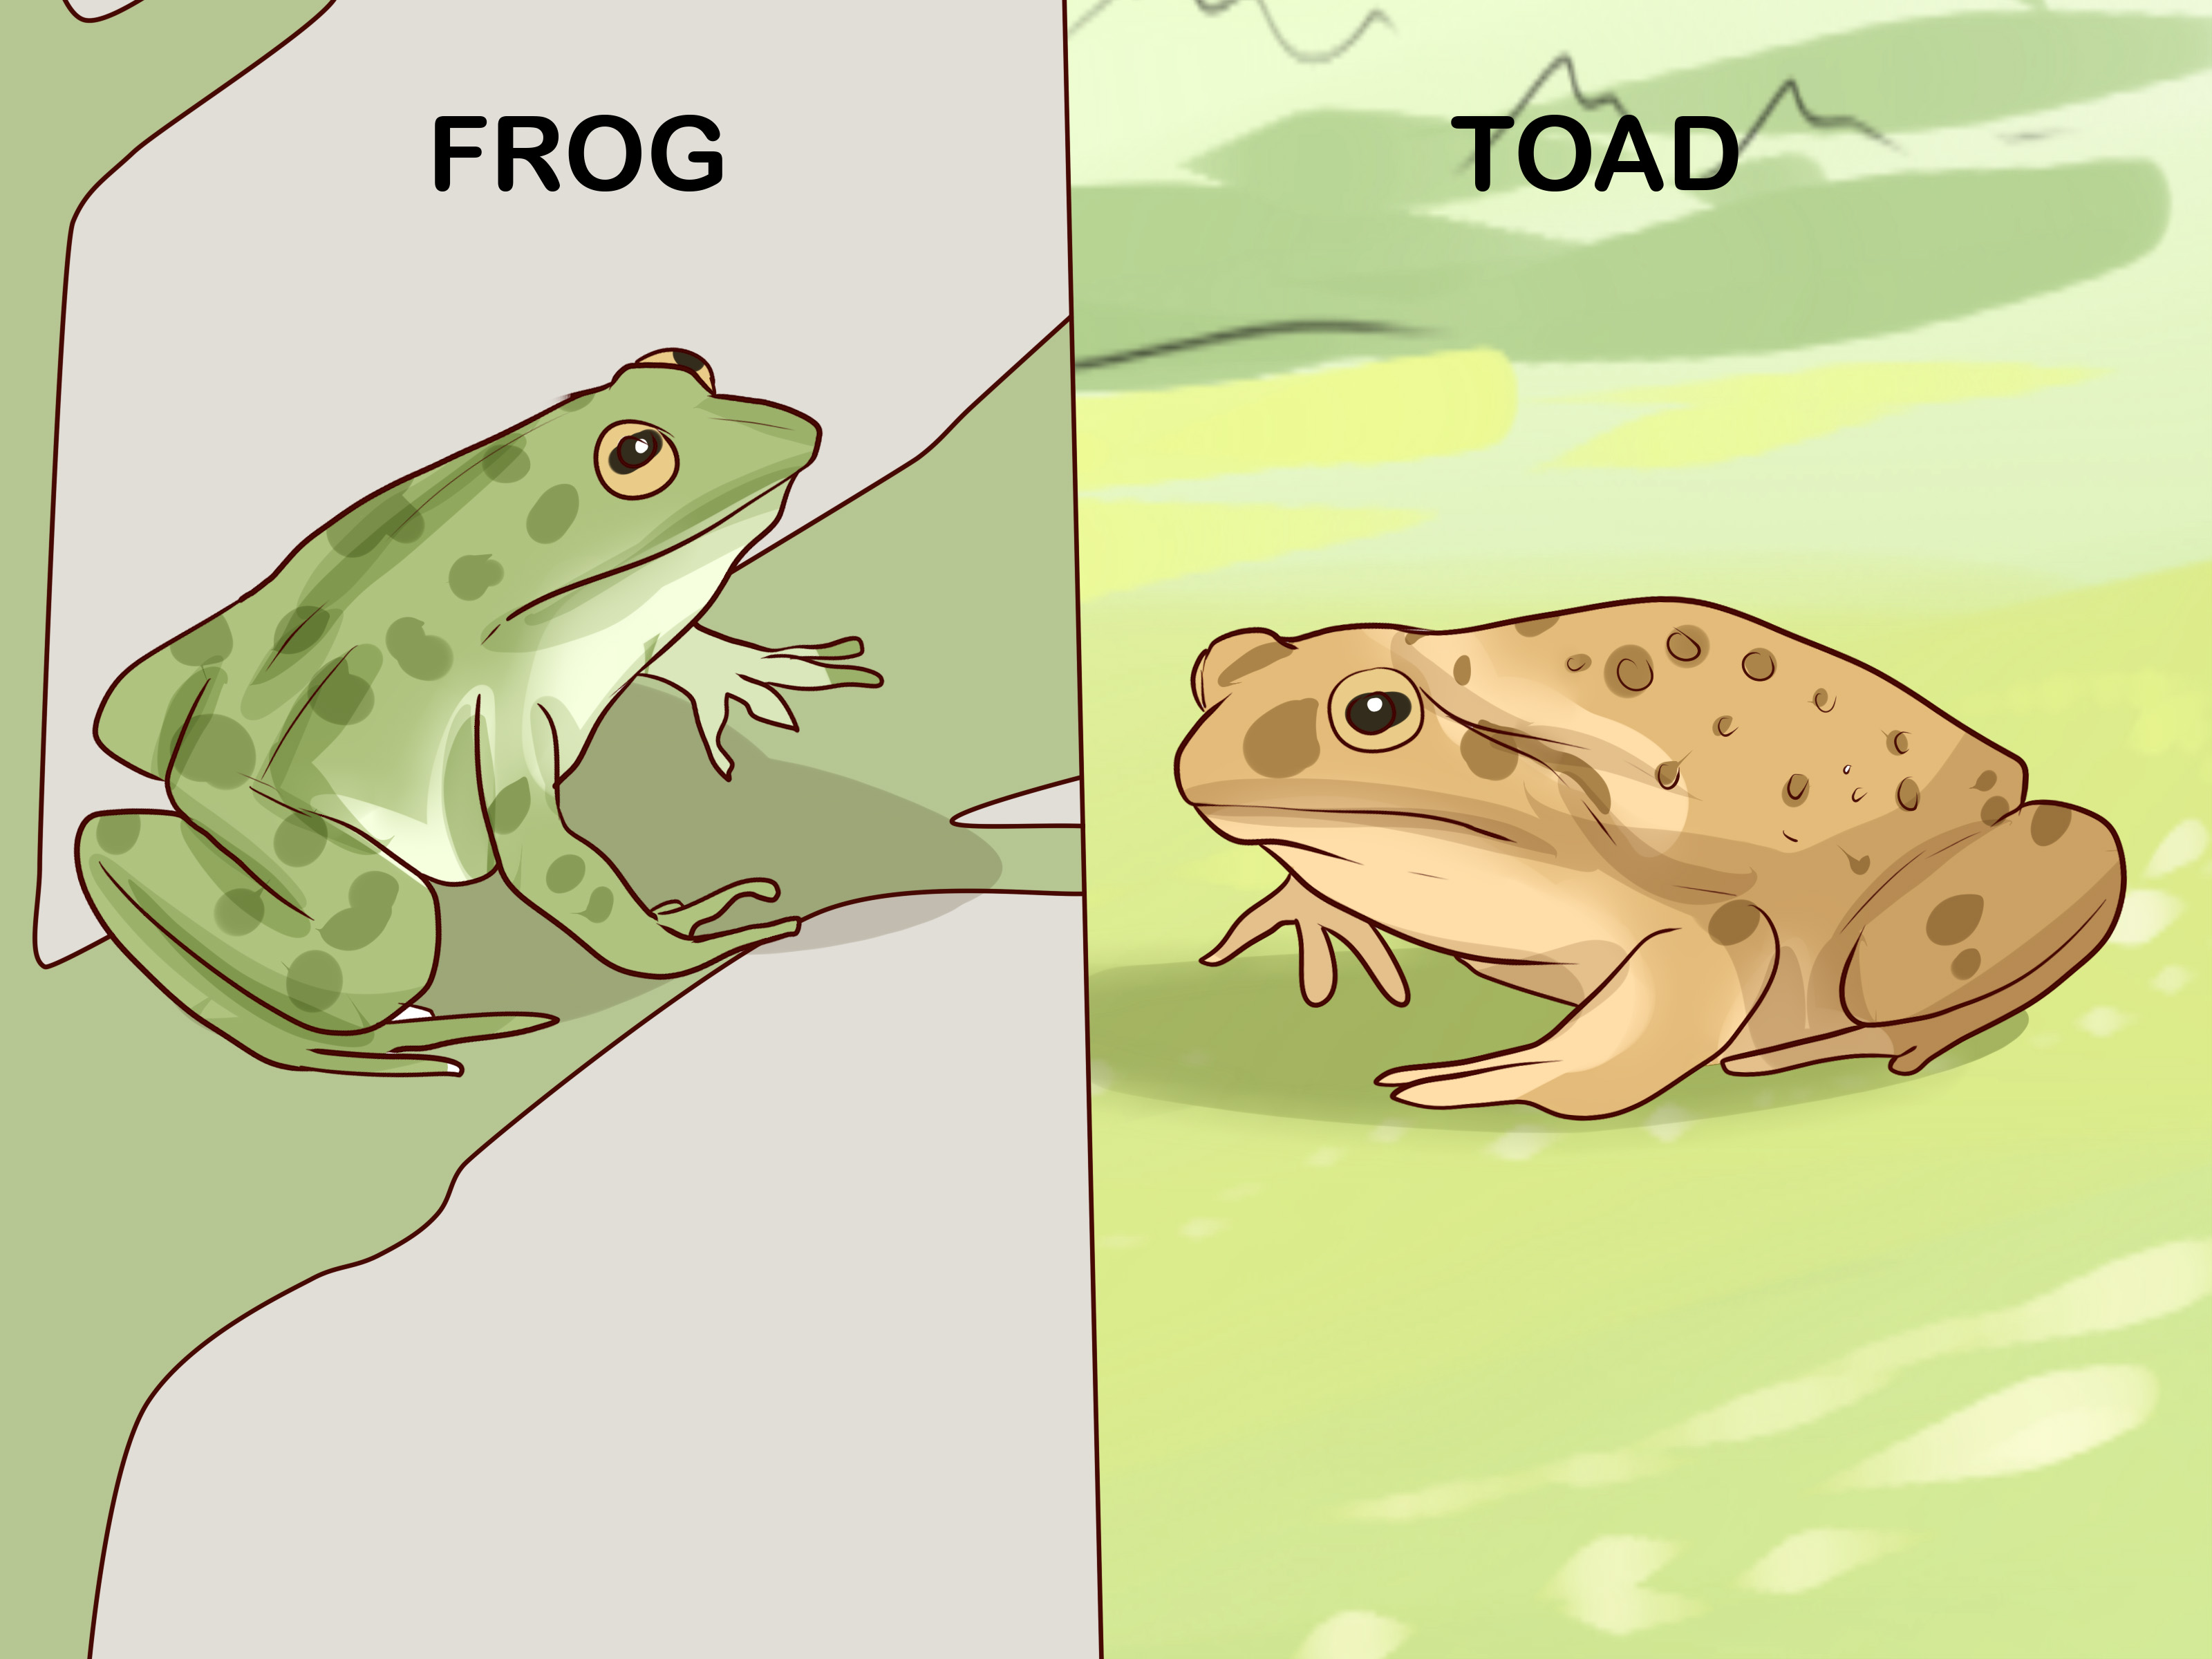 How To Find Toads With Pictures